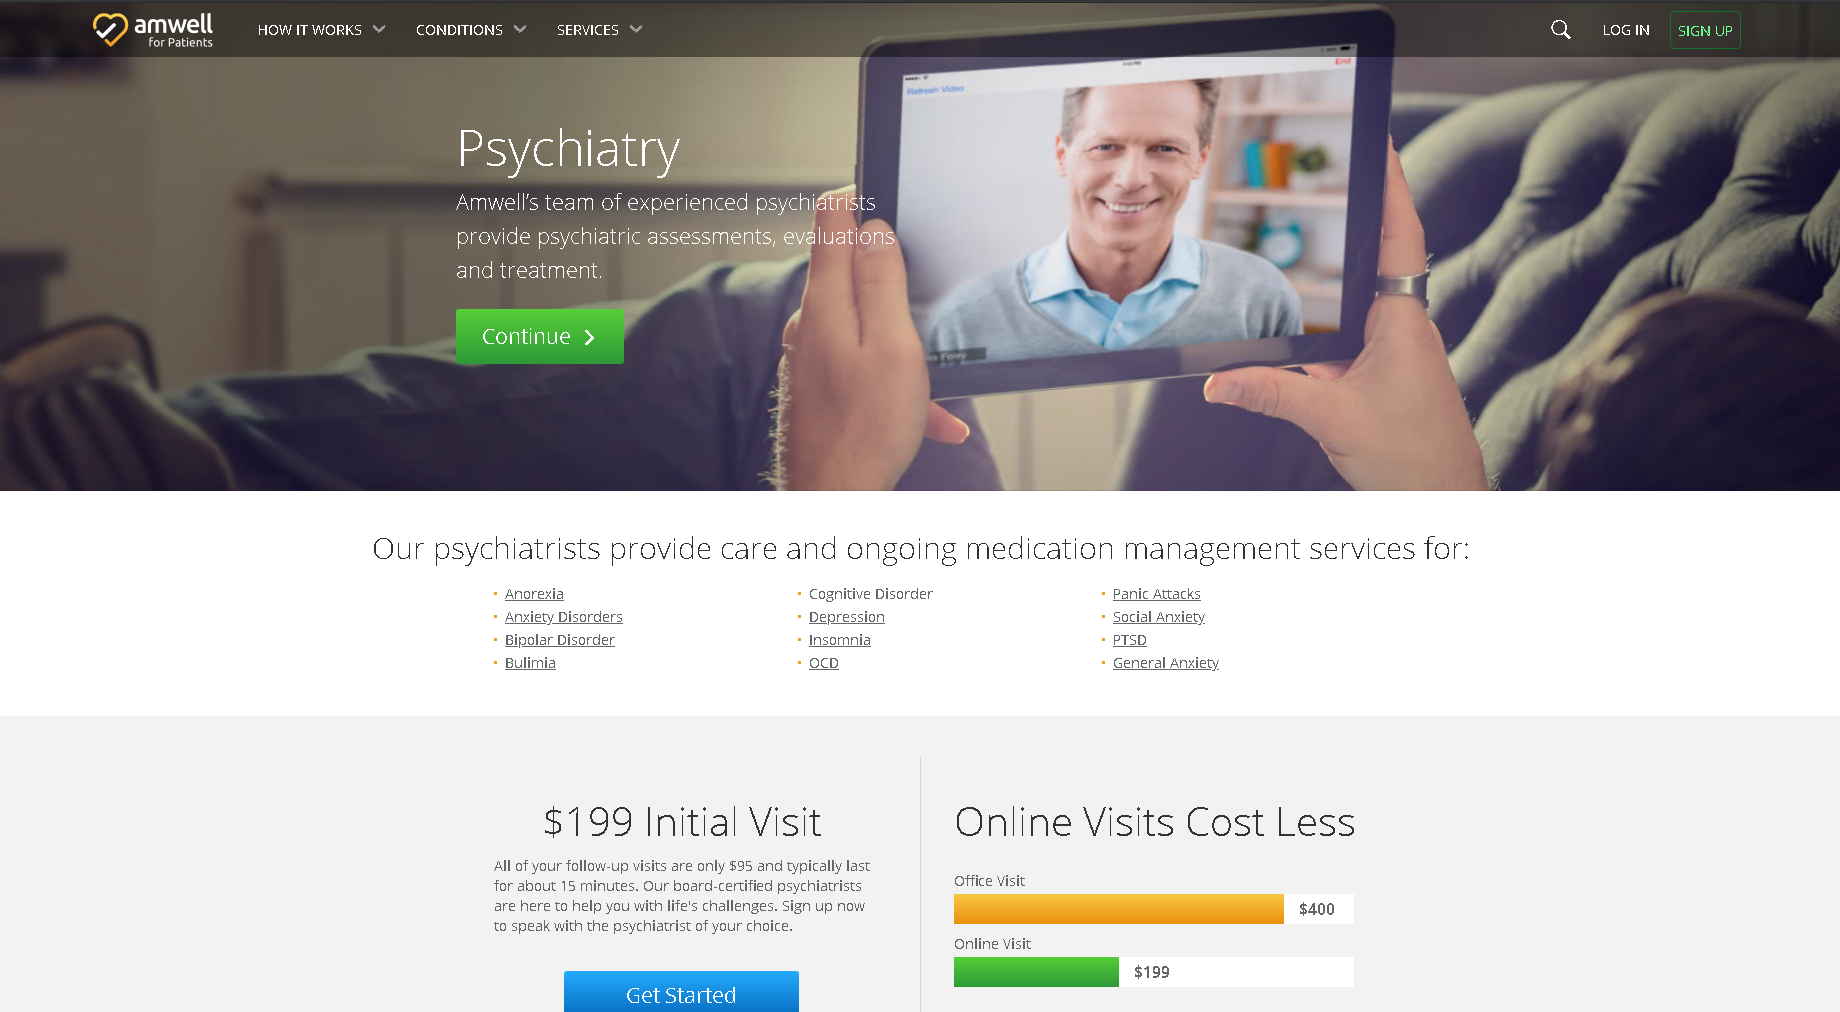 Amwell%20psychiatry%20and%20online%20therapy-5e90865246b7f.PNG